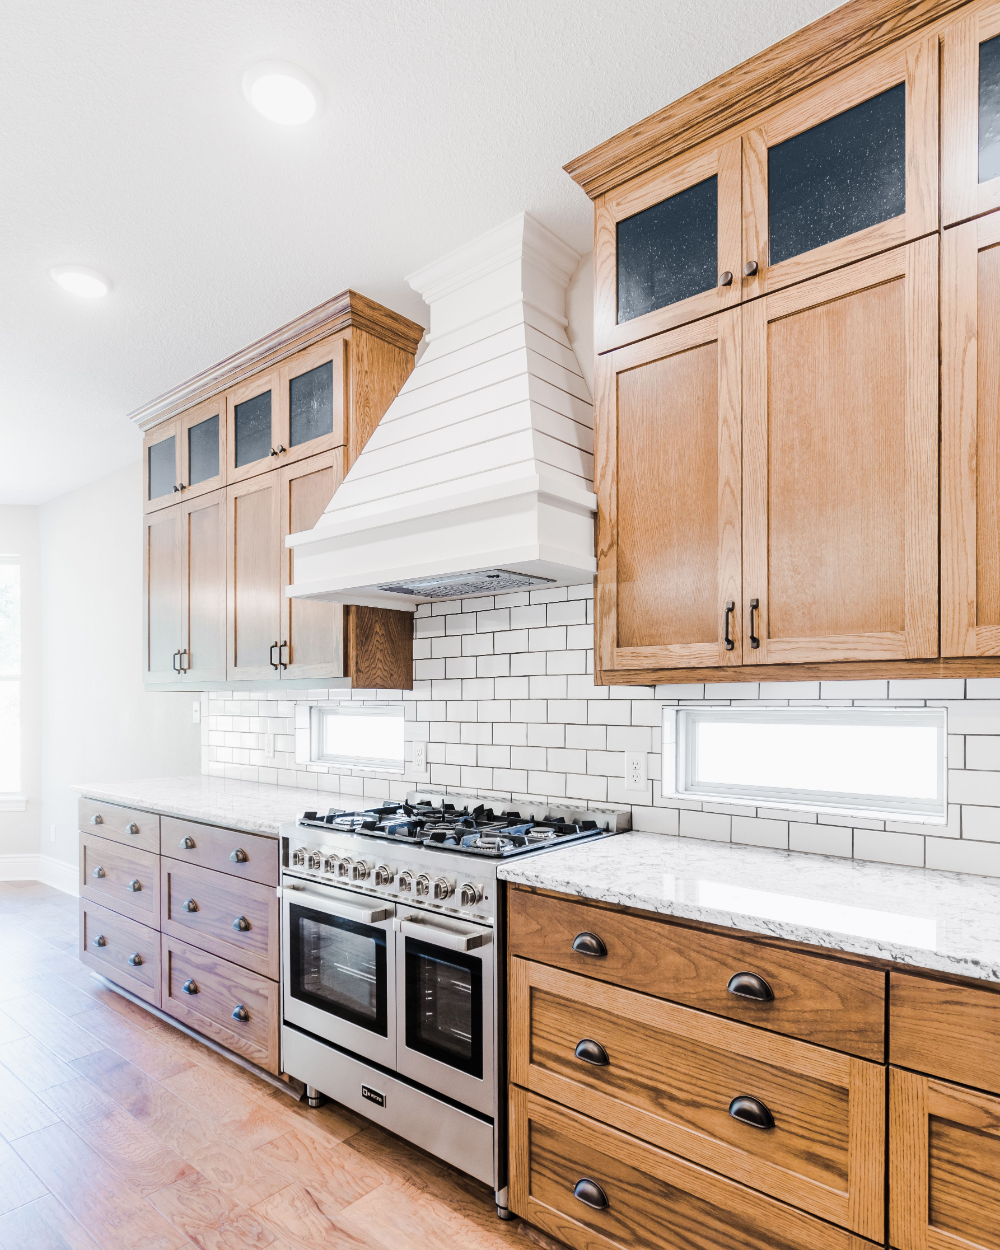 Modern Farmhouse Style Kitchen With Custom Oak Cabinets White Shiplap Hood And White Subway Tile In 2020 Kitchen Cabinet Styles Farmhouse Style Kitchen Kitchen Remodel